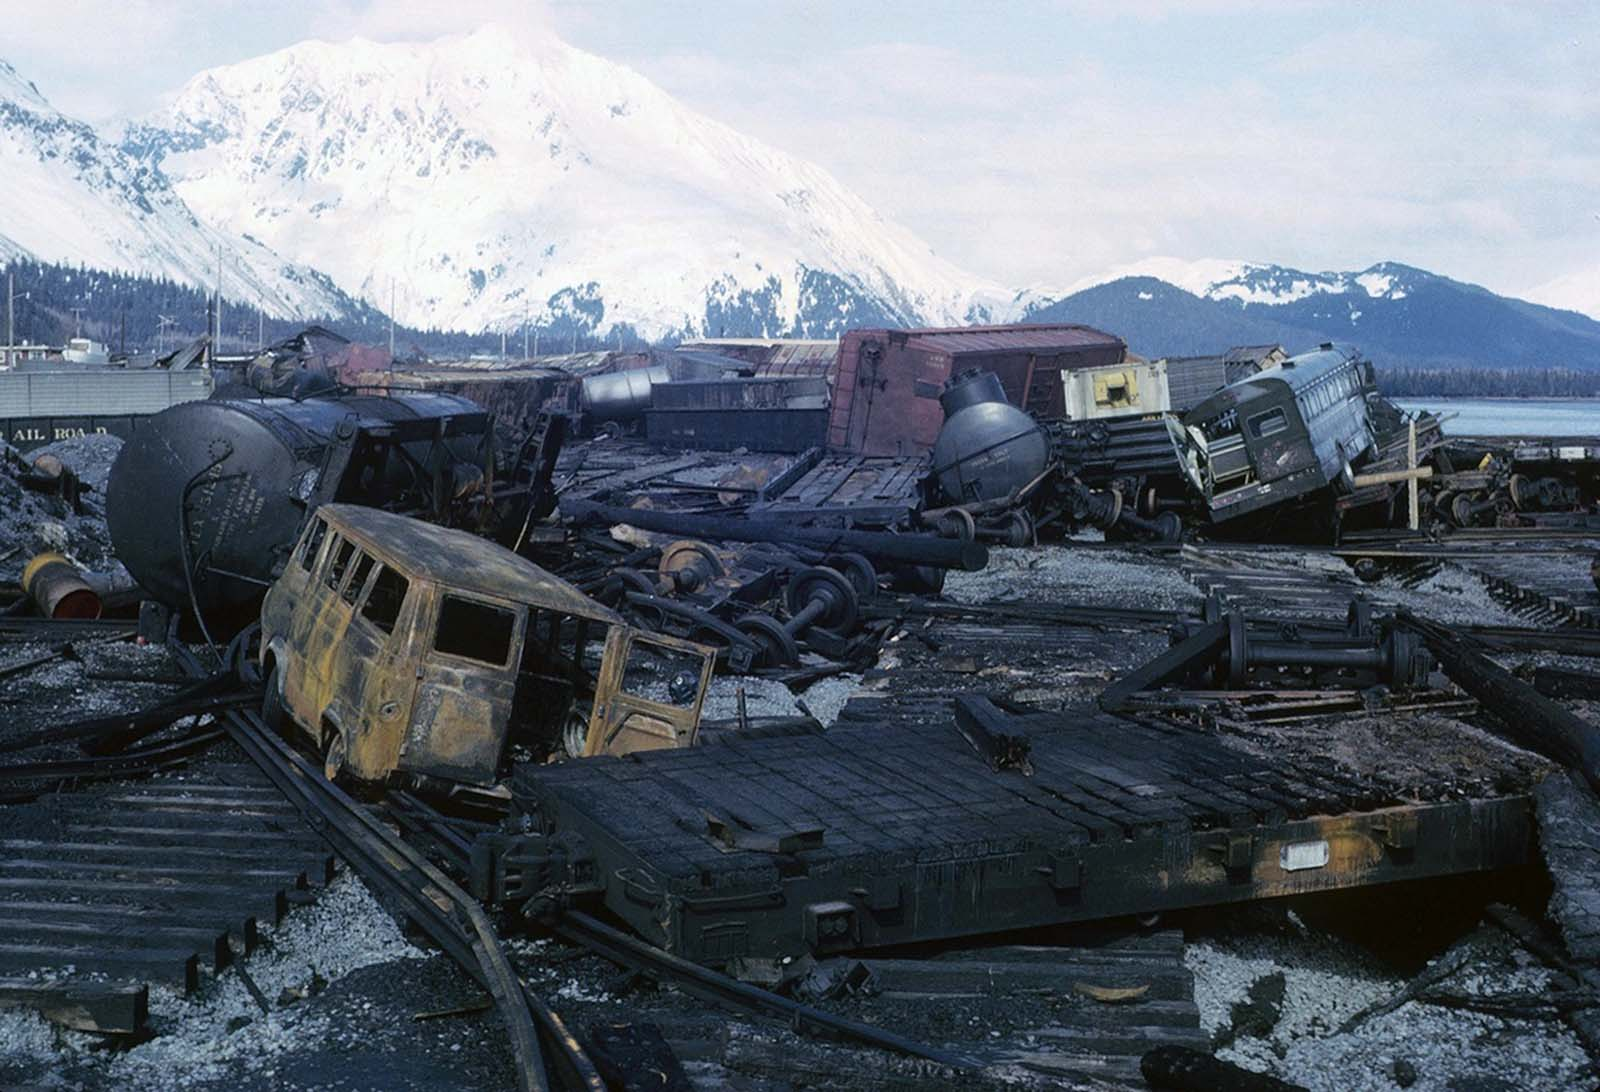 Chaos on the waterfront in Seward, burned-out vehicles and rail cars strewn across the ruined rail yard.